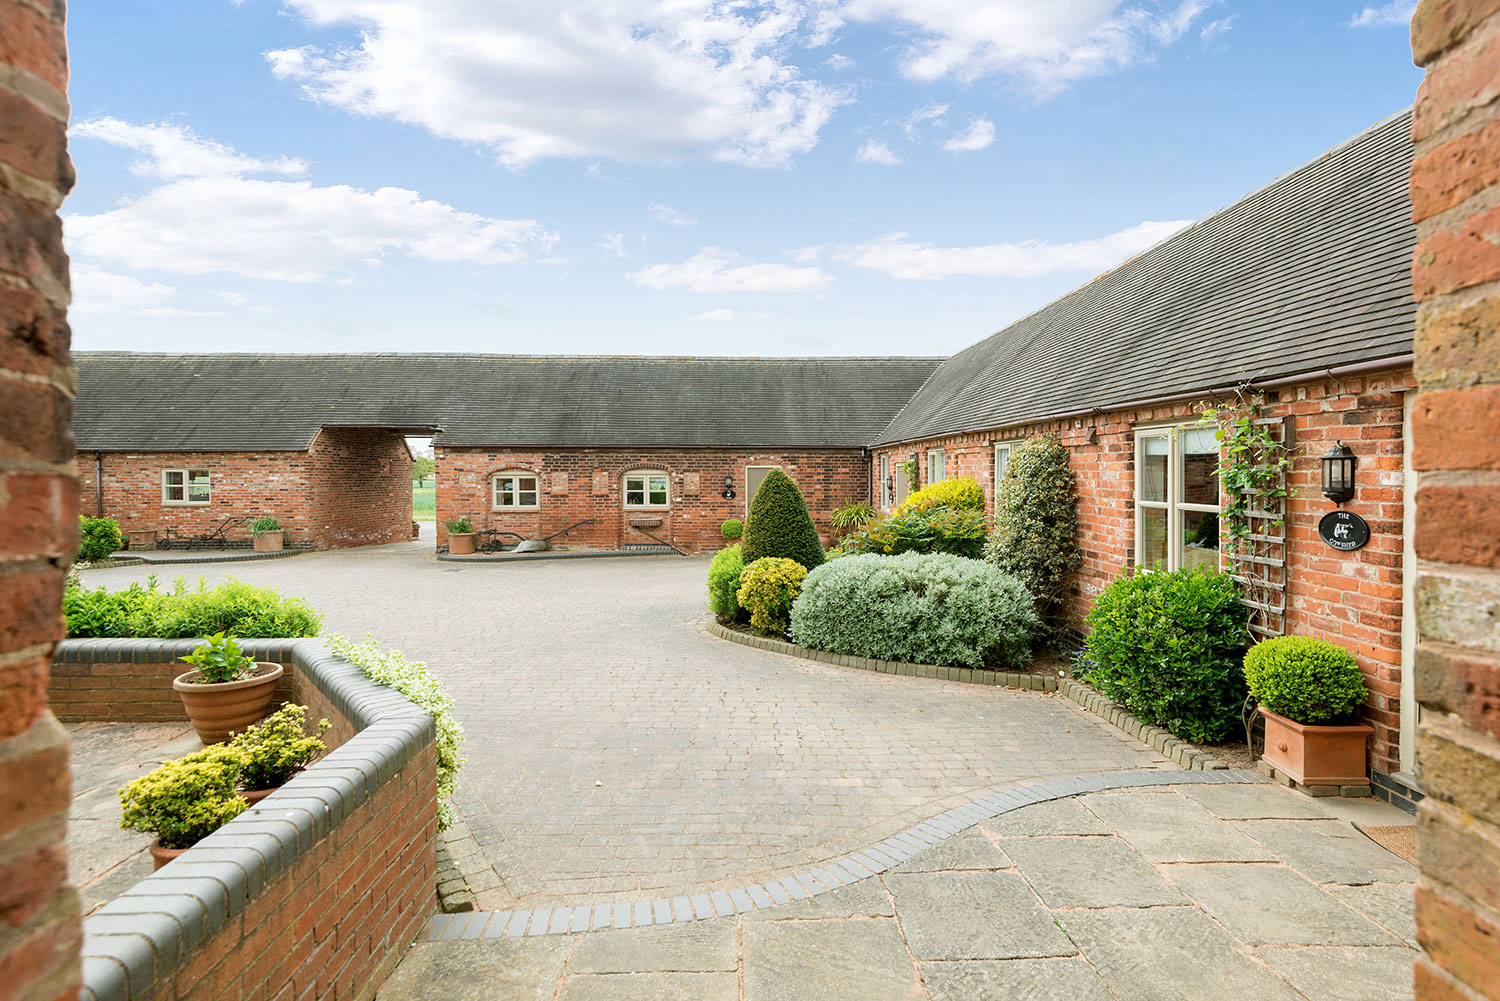 A warm welcome at our luxury holiday accommodation | Upper Rectory Farm Cottages